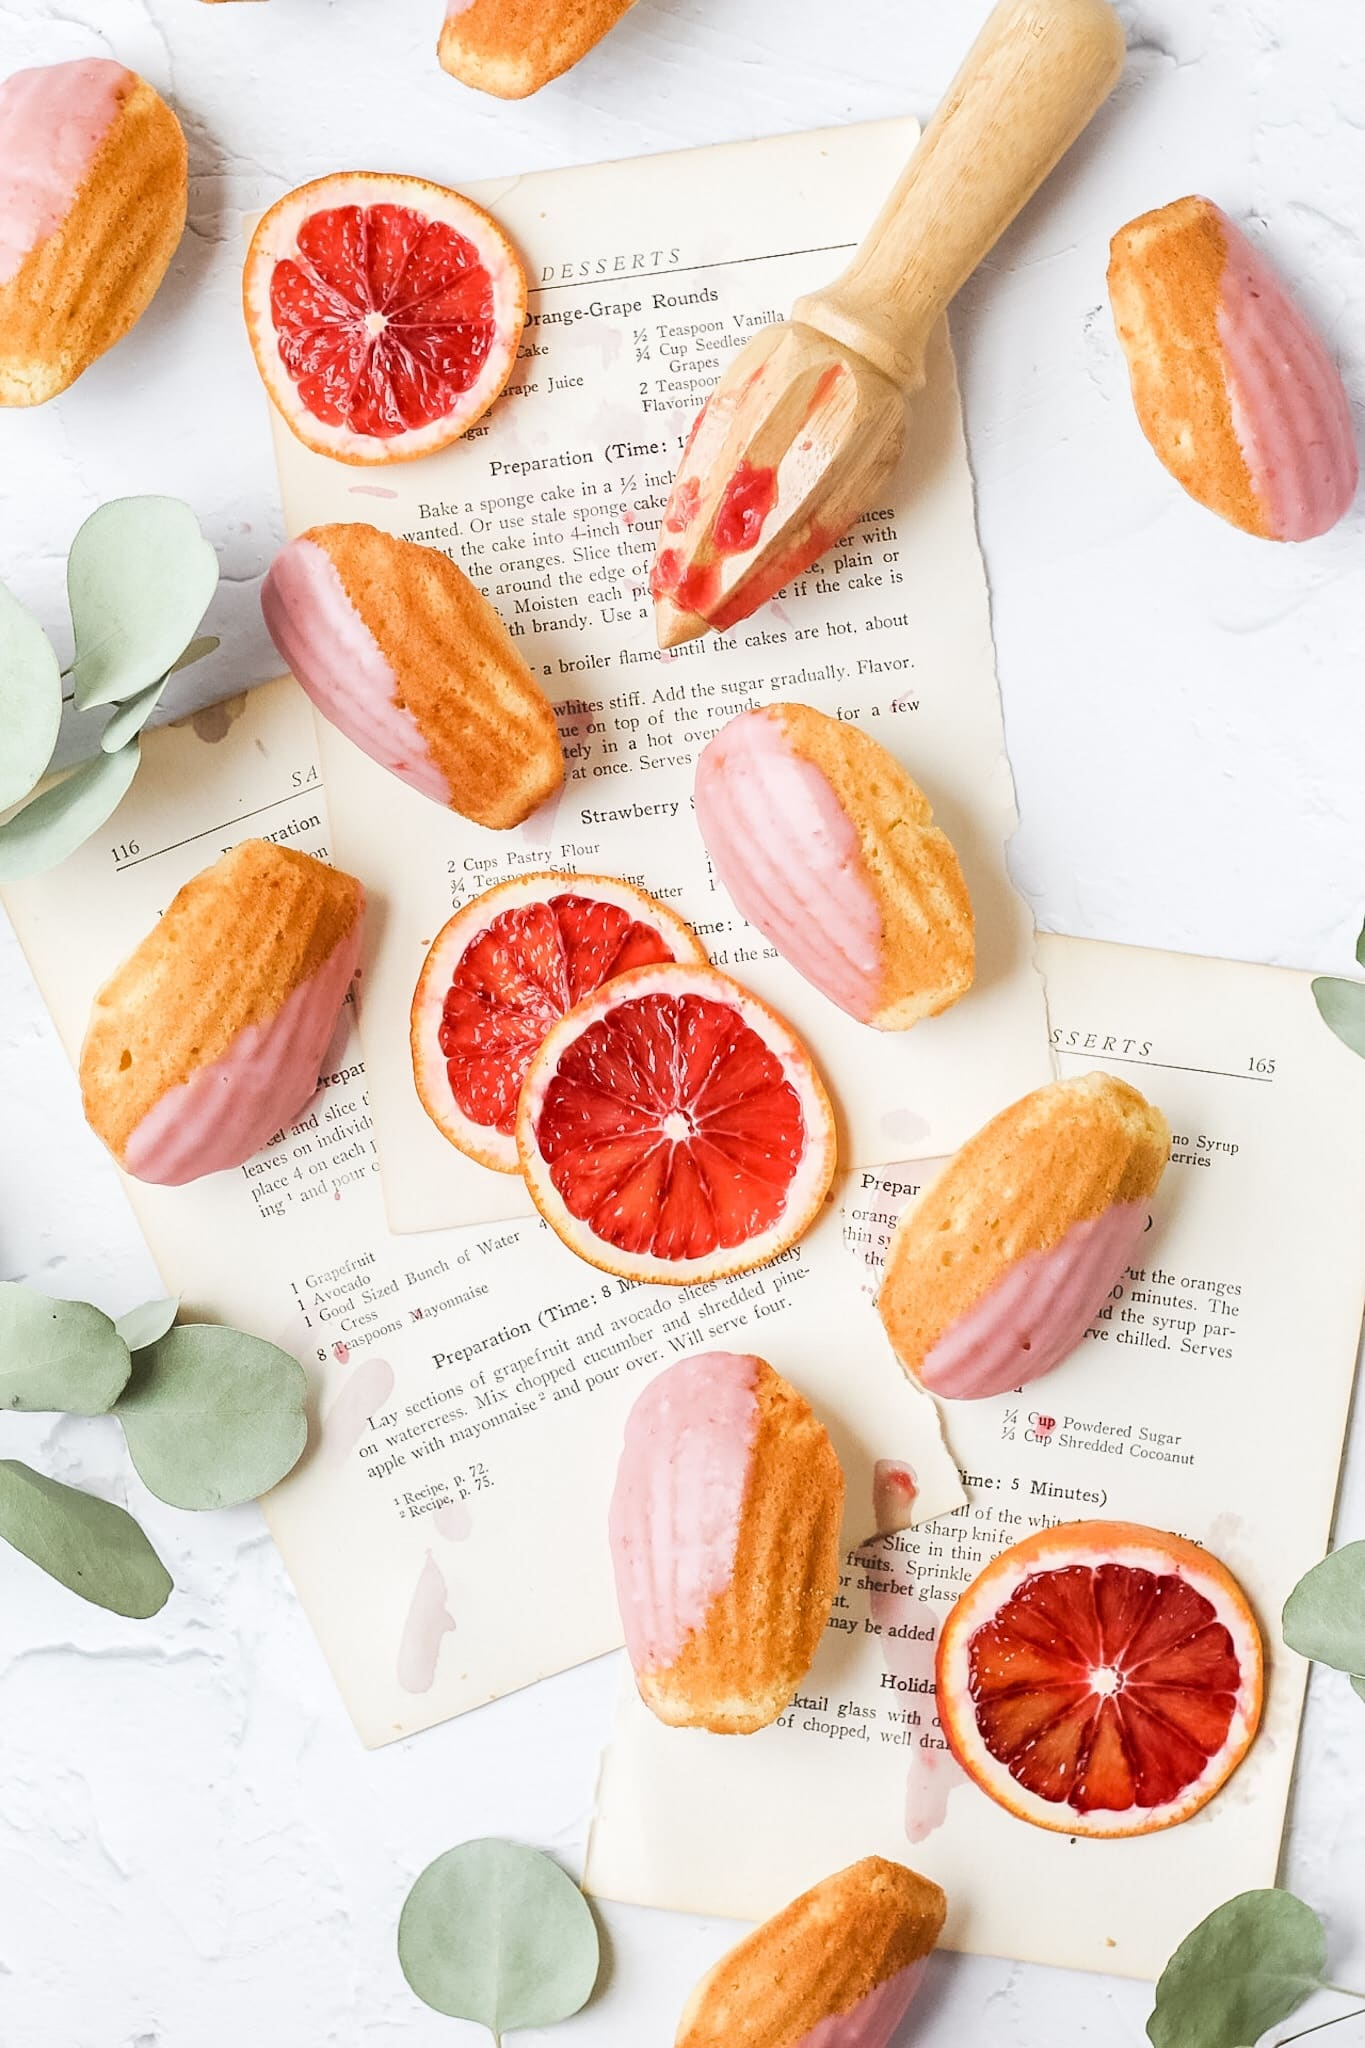 madeleines dipped in blood orange glaze with slices of blood oranges and citrus reamer